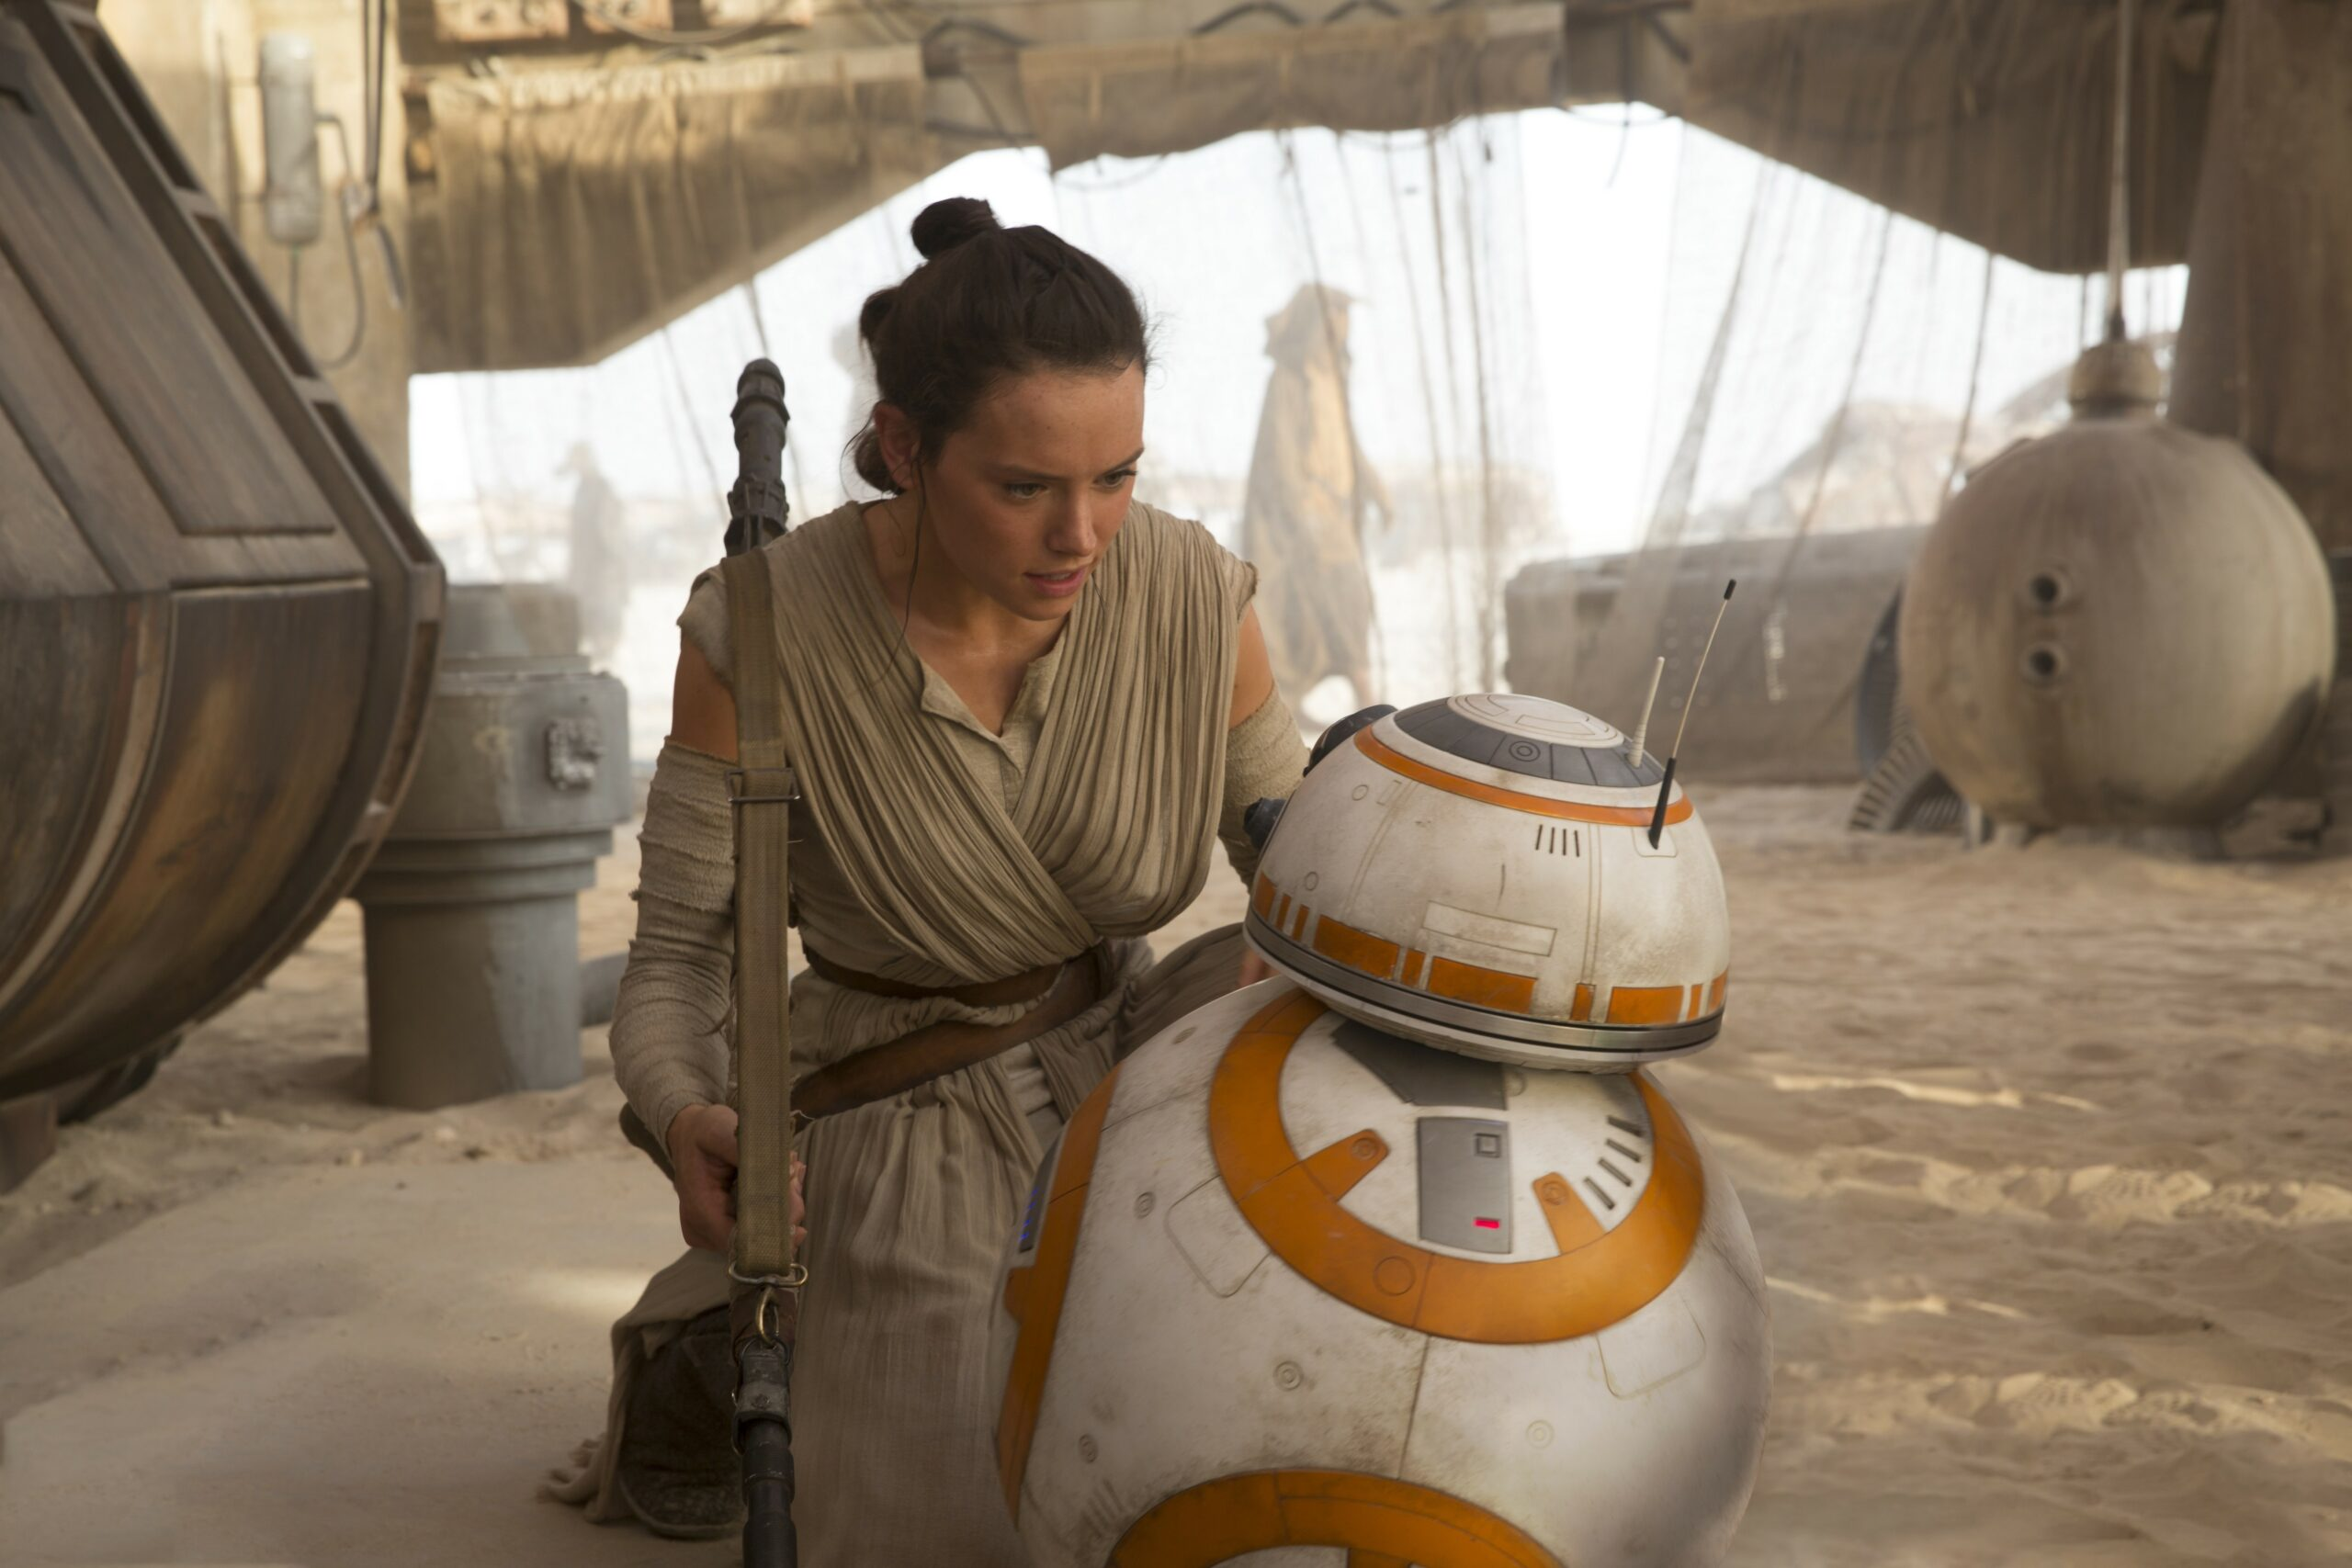 daisy rildeywith bb 8 pic scaled